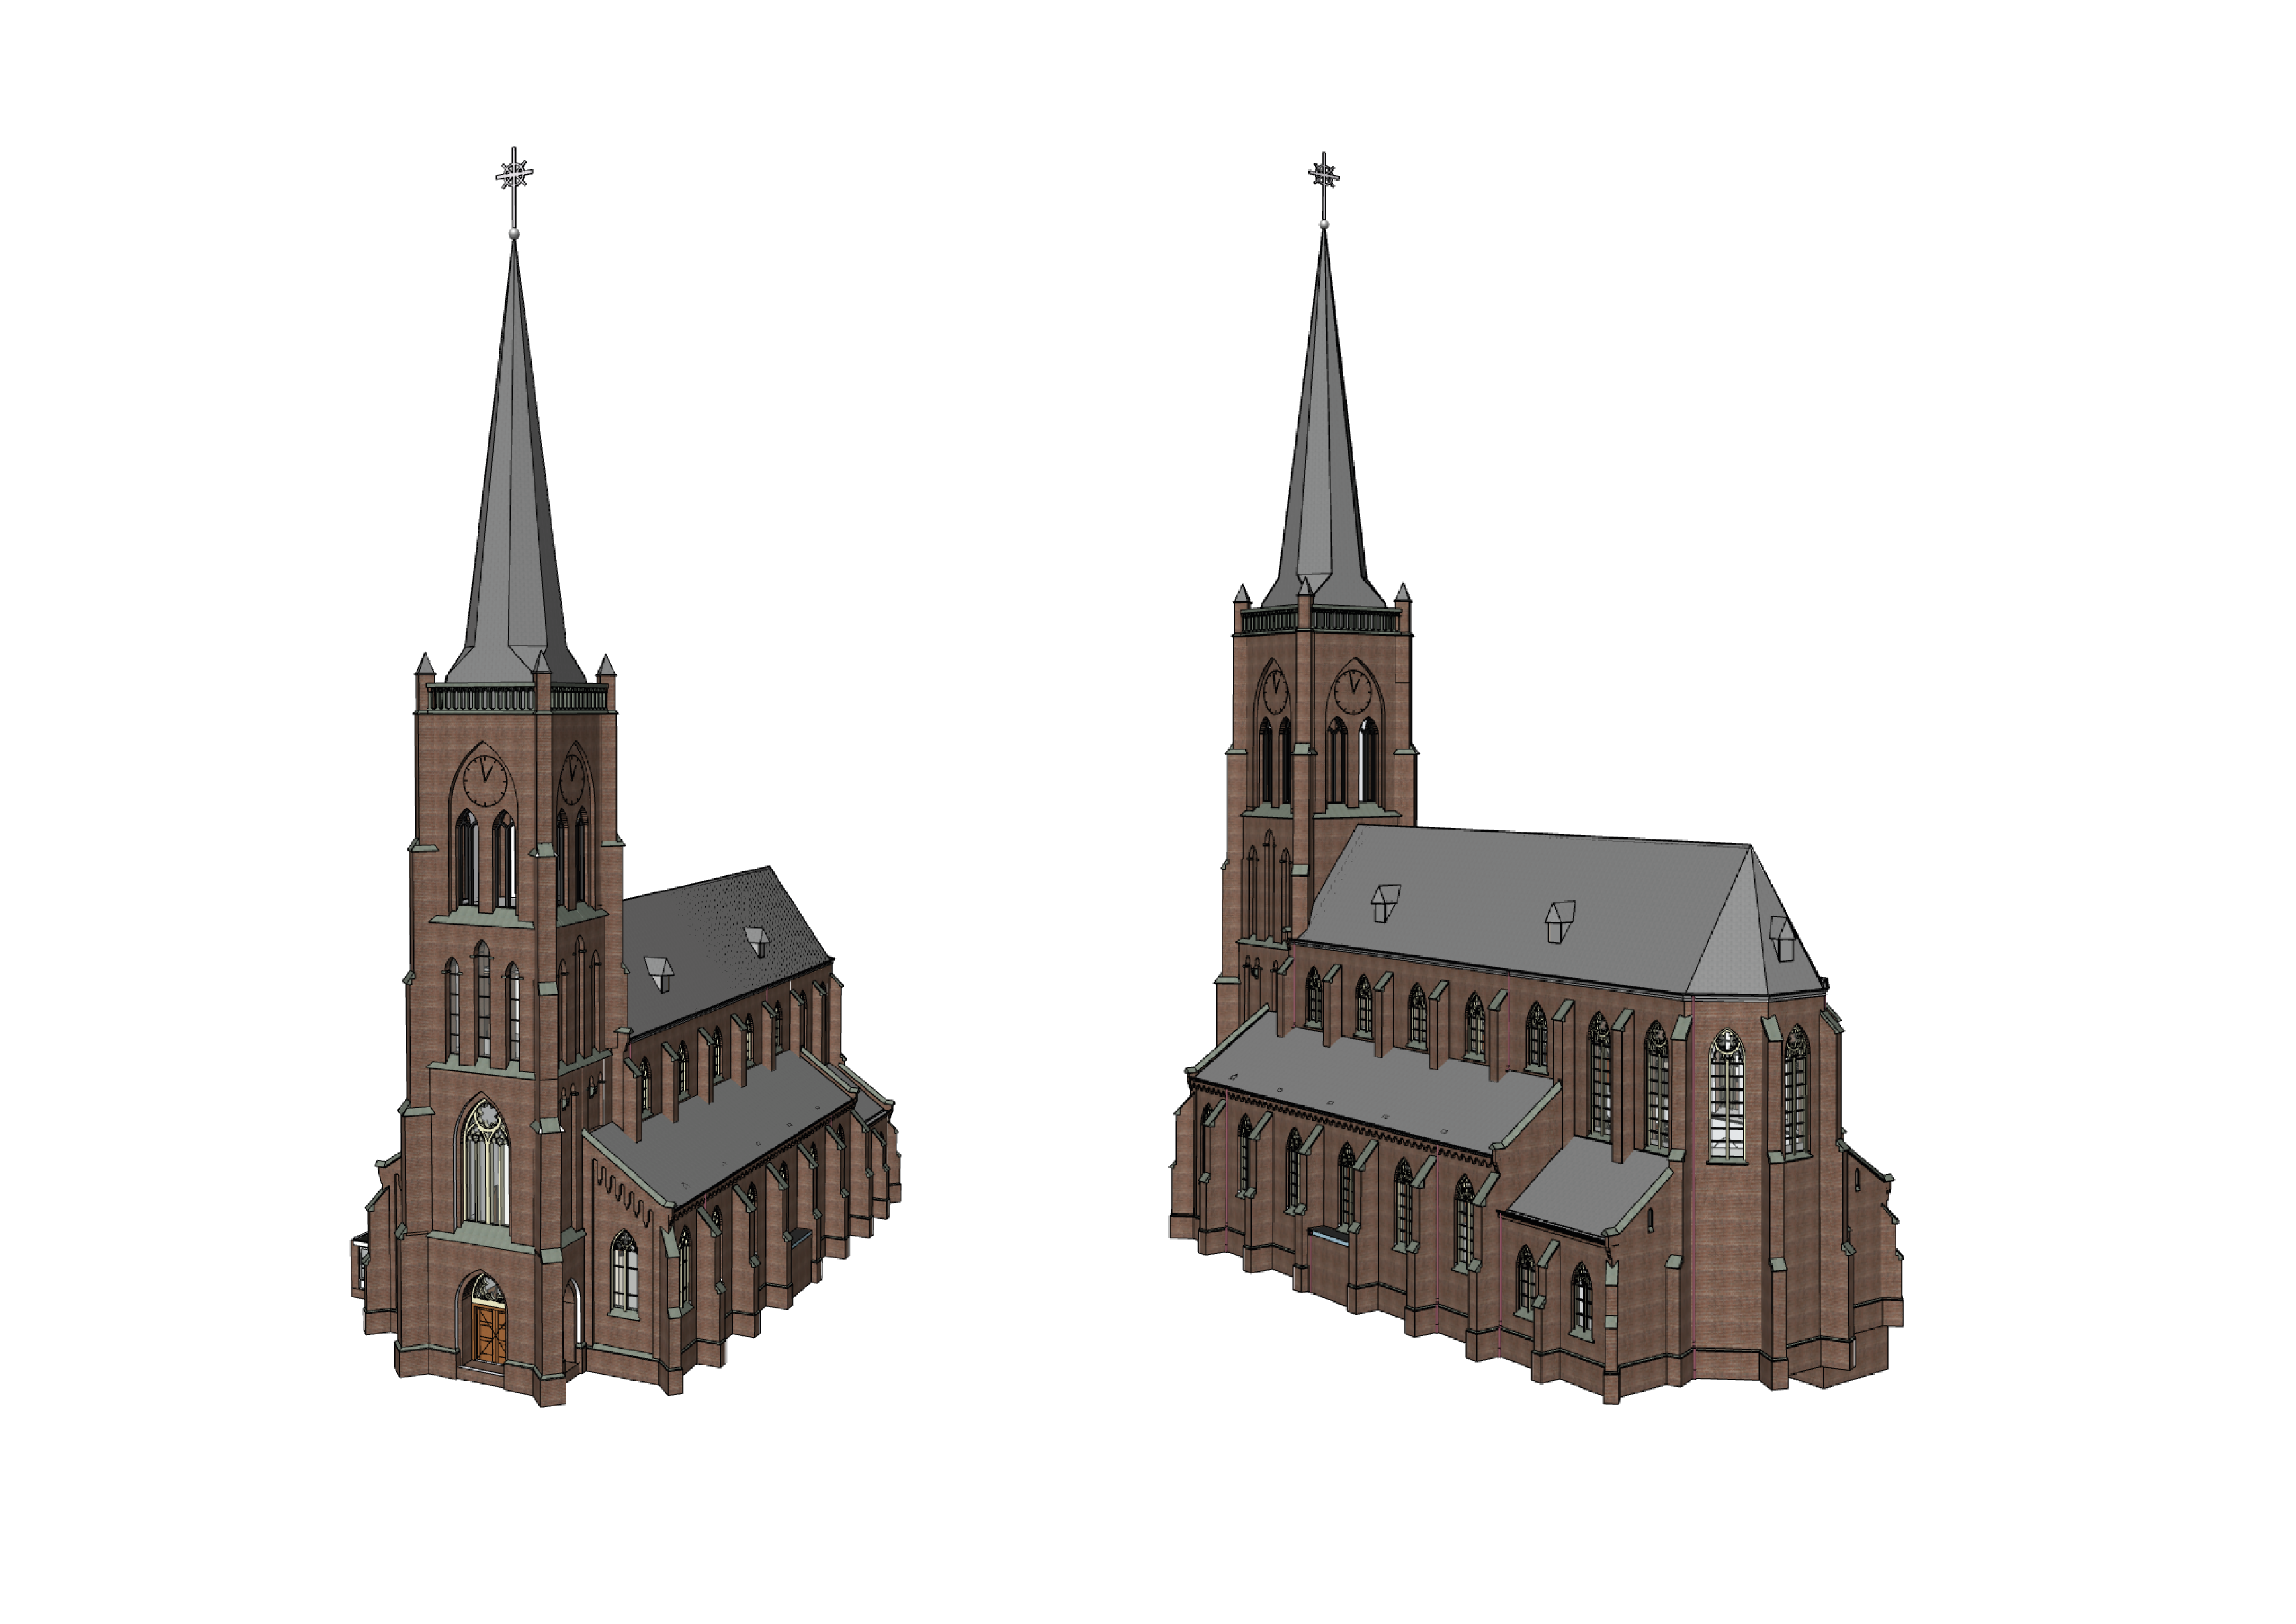 Kerk_Batenburg_BIMnD_BIM_Model_Archicad_Revit_header